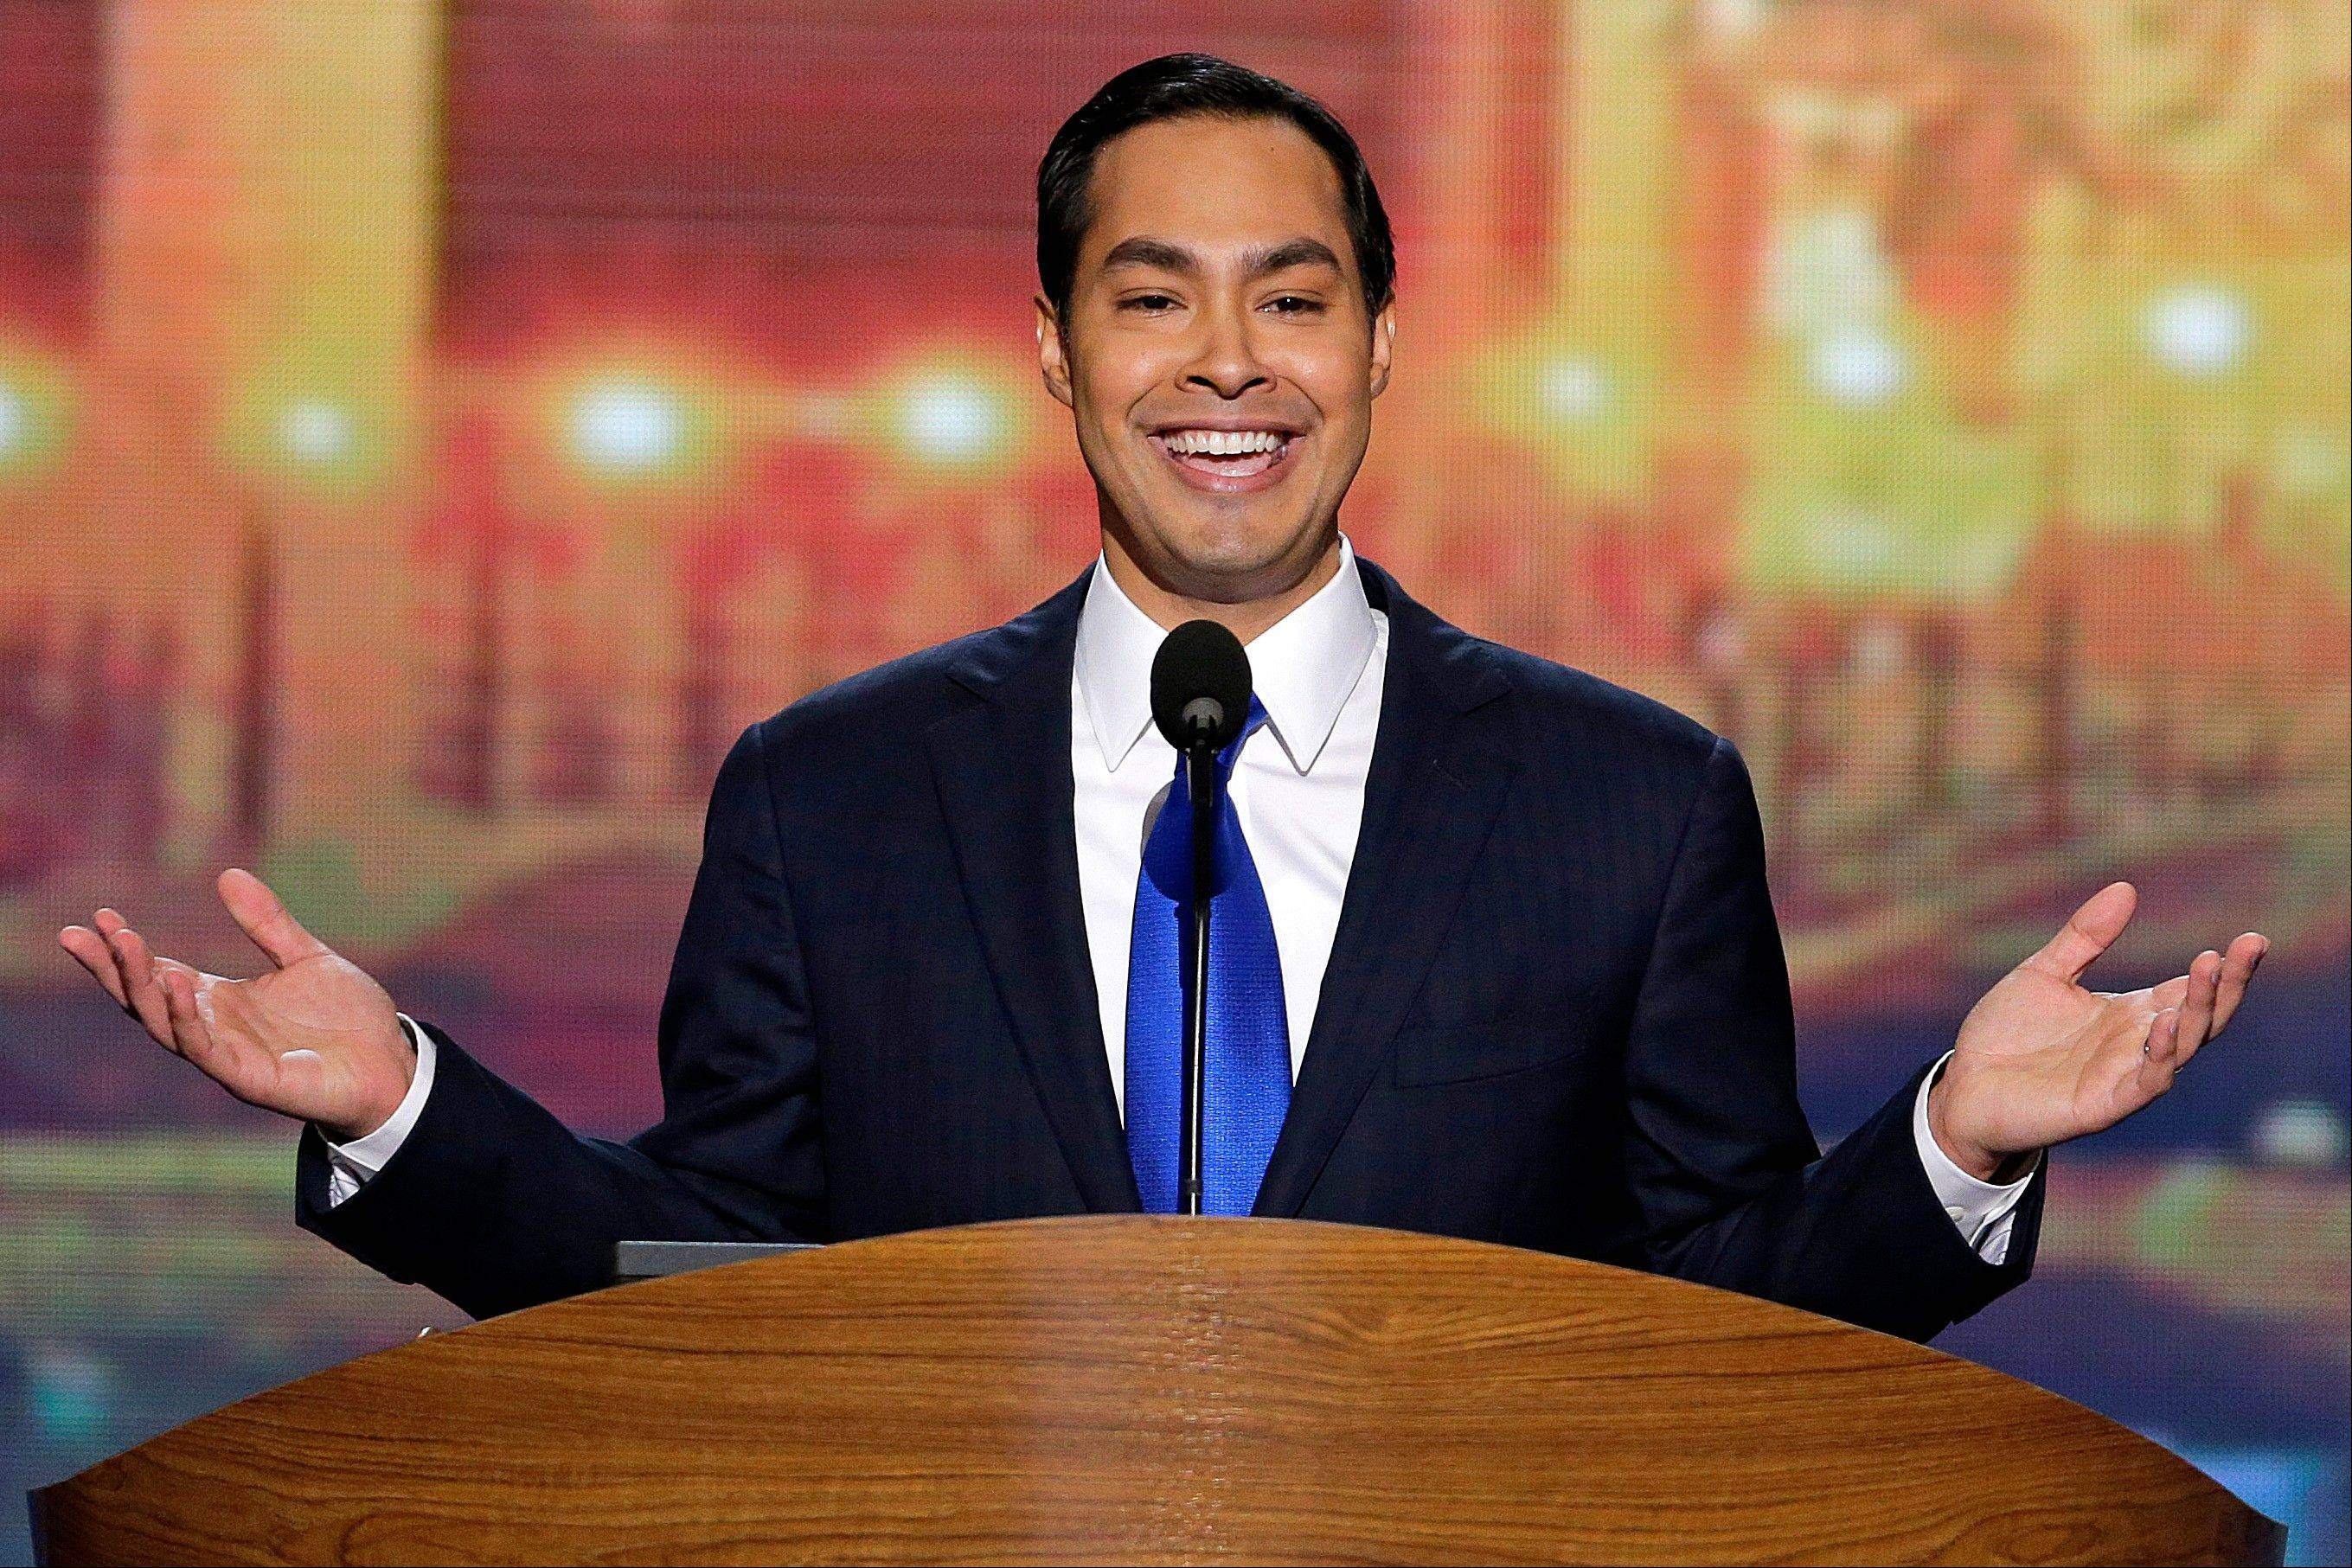 San Antonio Mayor Julian Castro delivers the keynote address at the Democratic National Convention in Charlotte, N.C., Tuesday.